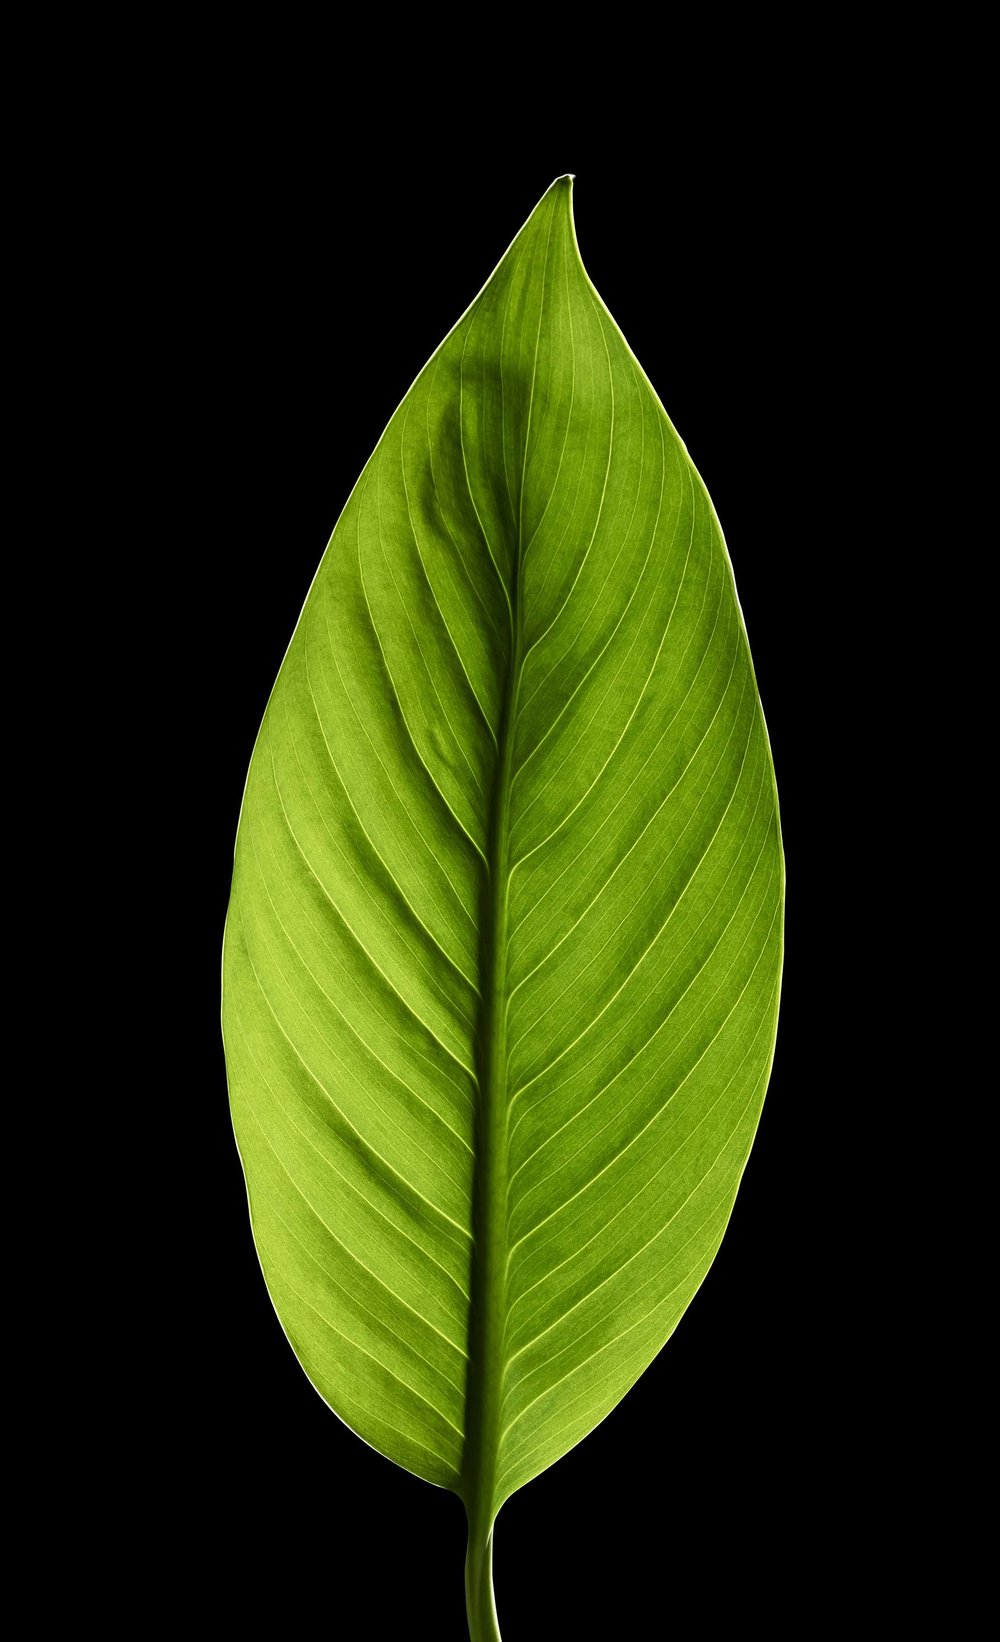 Filler_Leaf_Shot_89_Pathed_2791.jpg